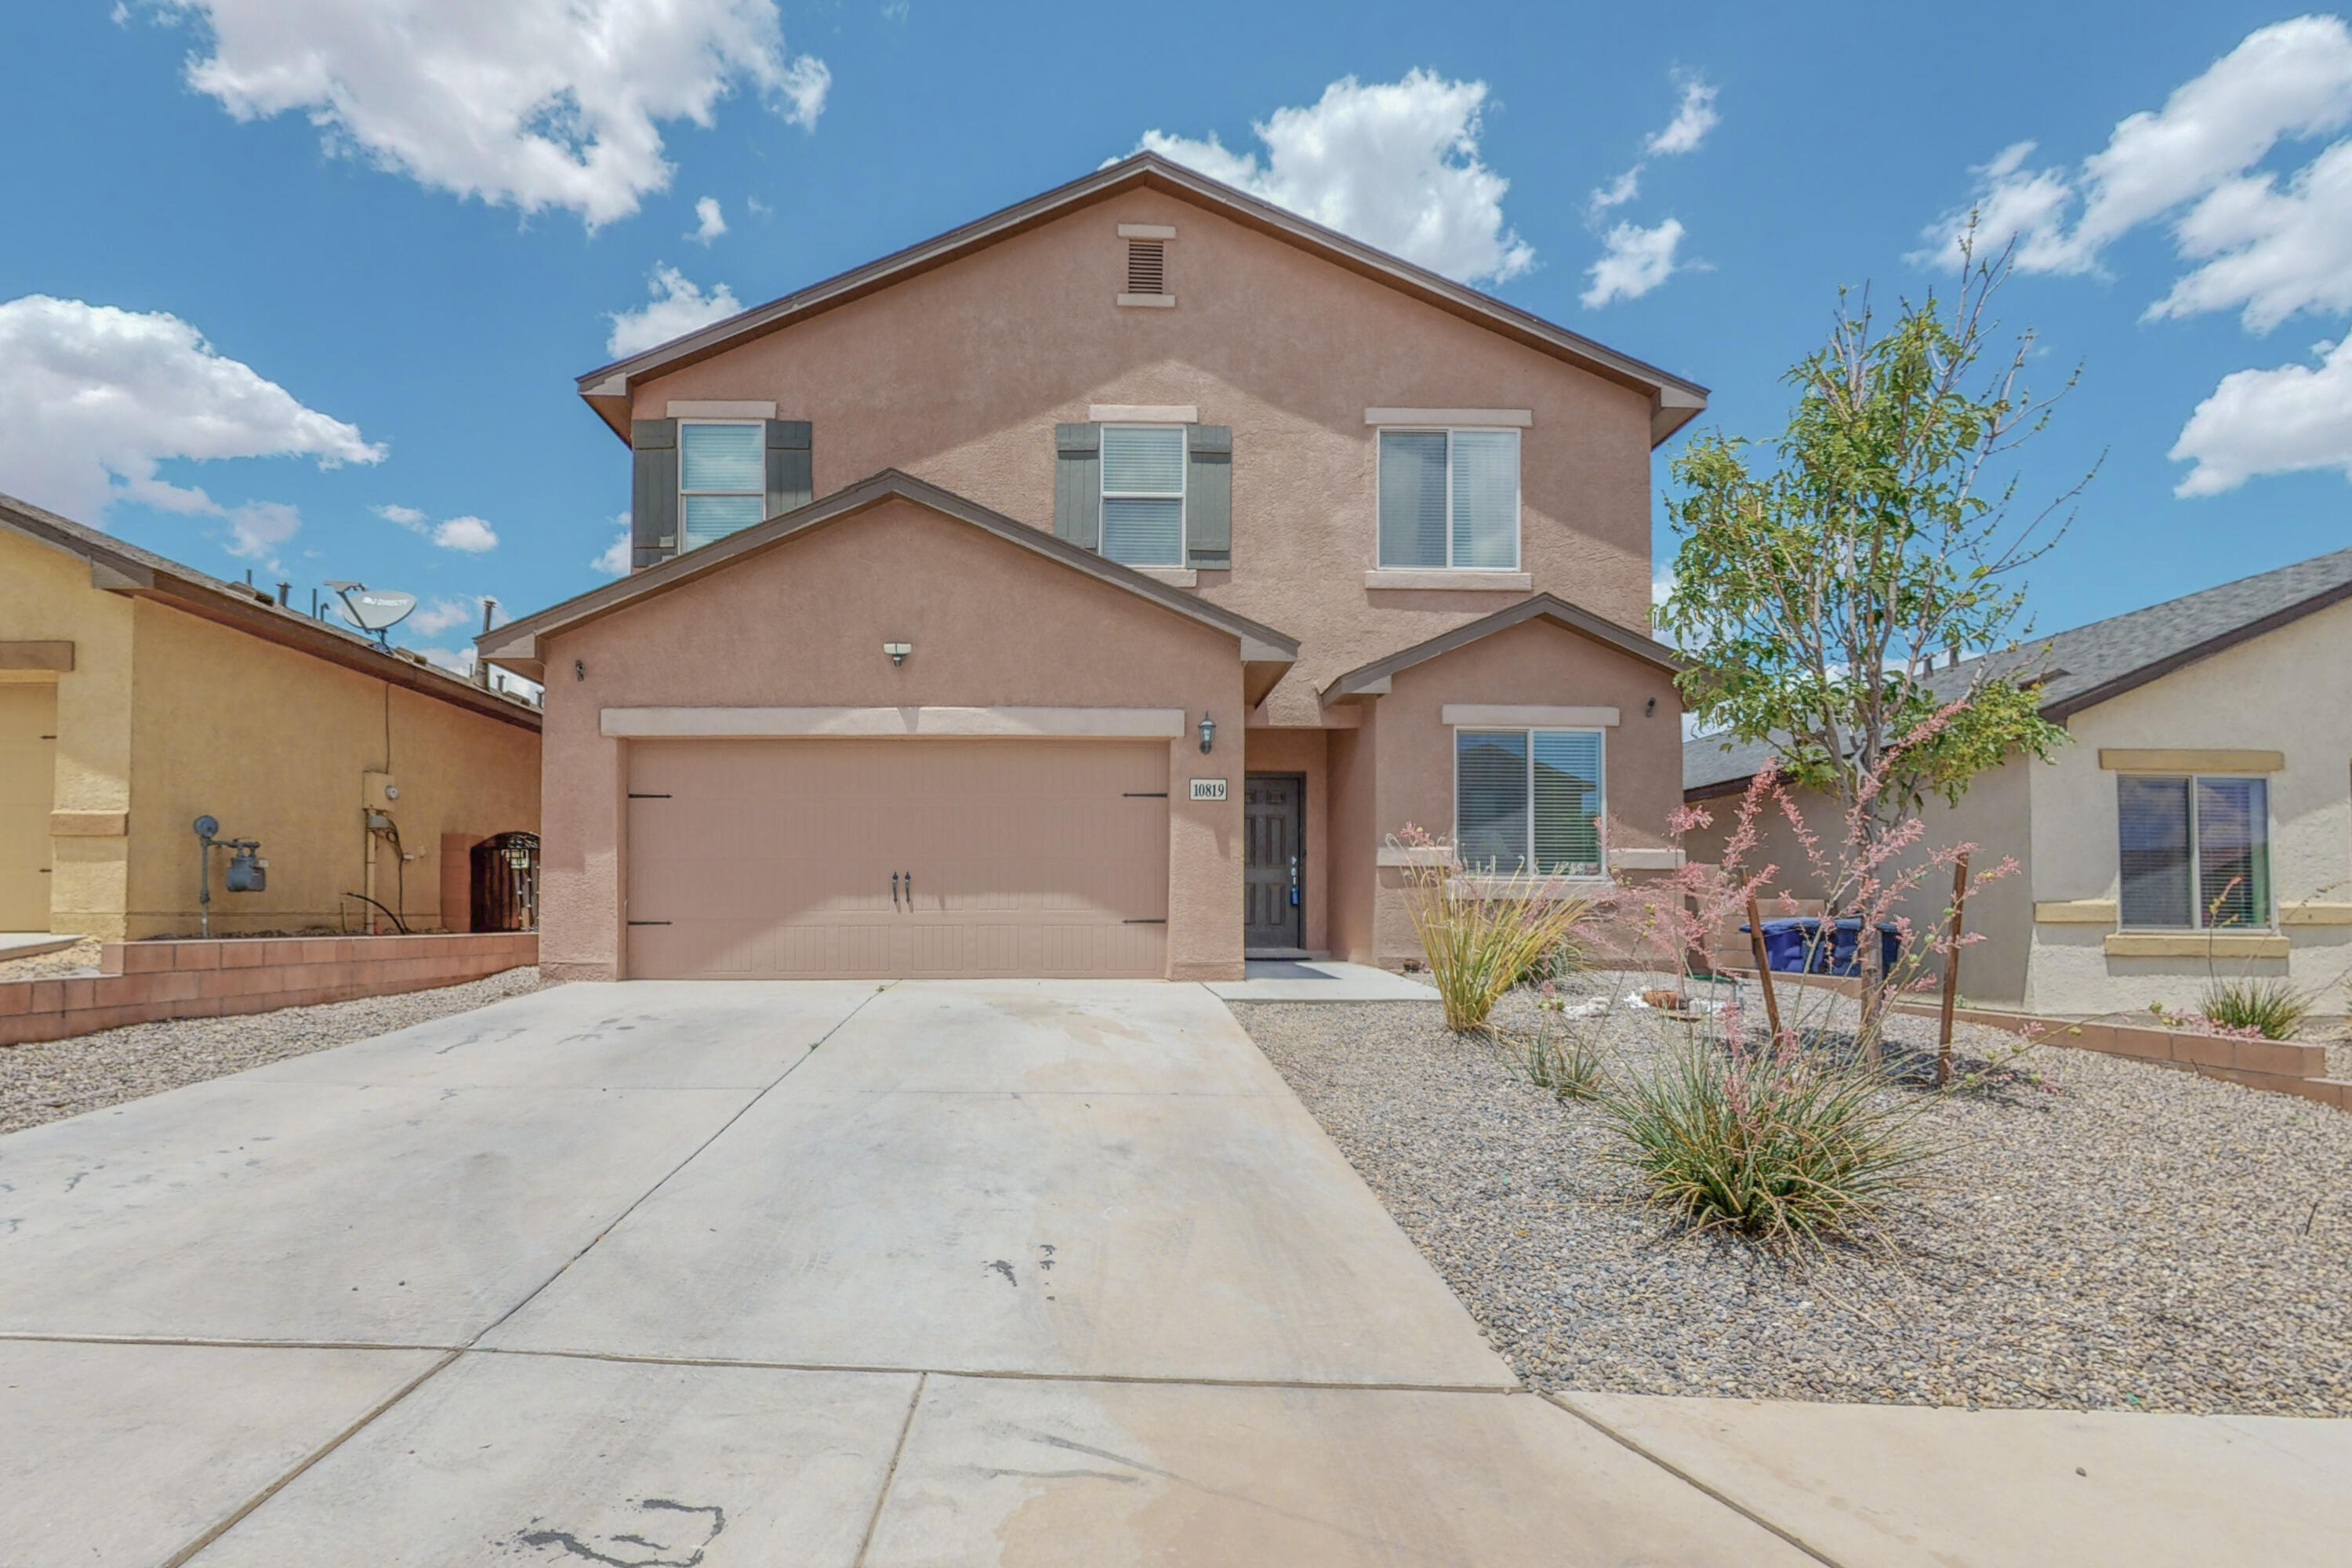 Best Value in the SW Heights!  This beautiful newer 4 bedroom home is now available!  Home features 4 bedrooms and 3 bathroom, open-concept living with upstairs loft! Large backyard with covered patio and custom dog run!